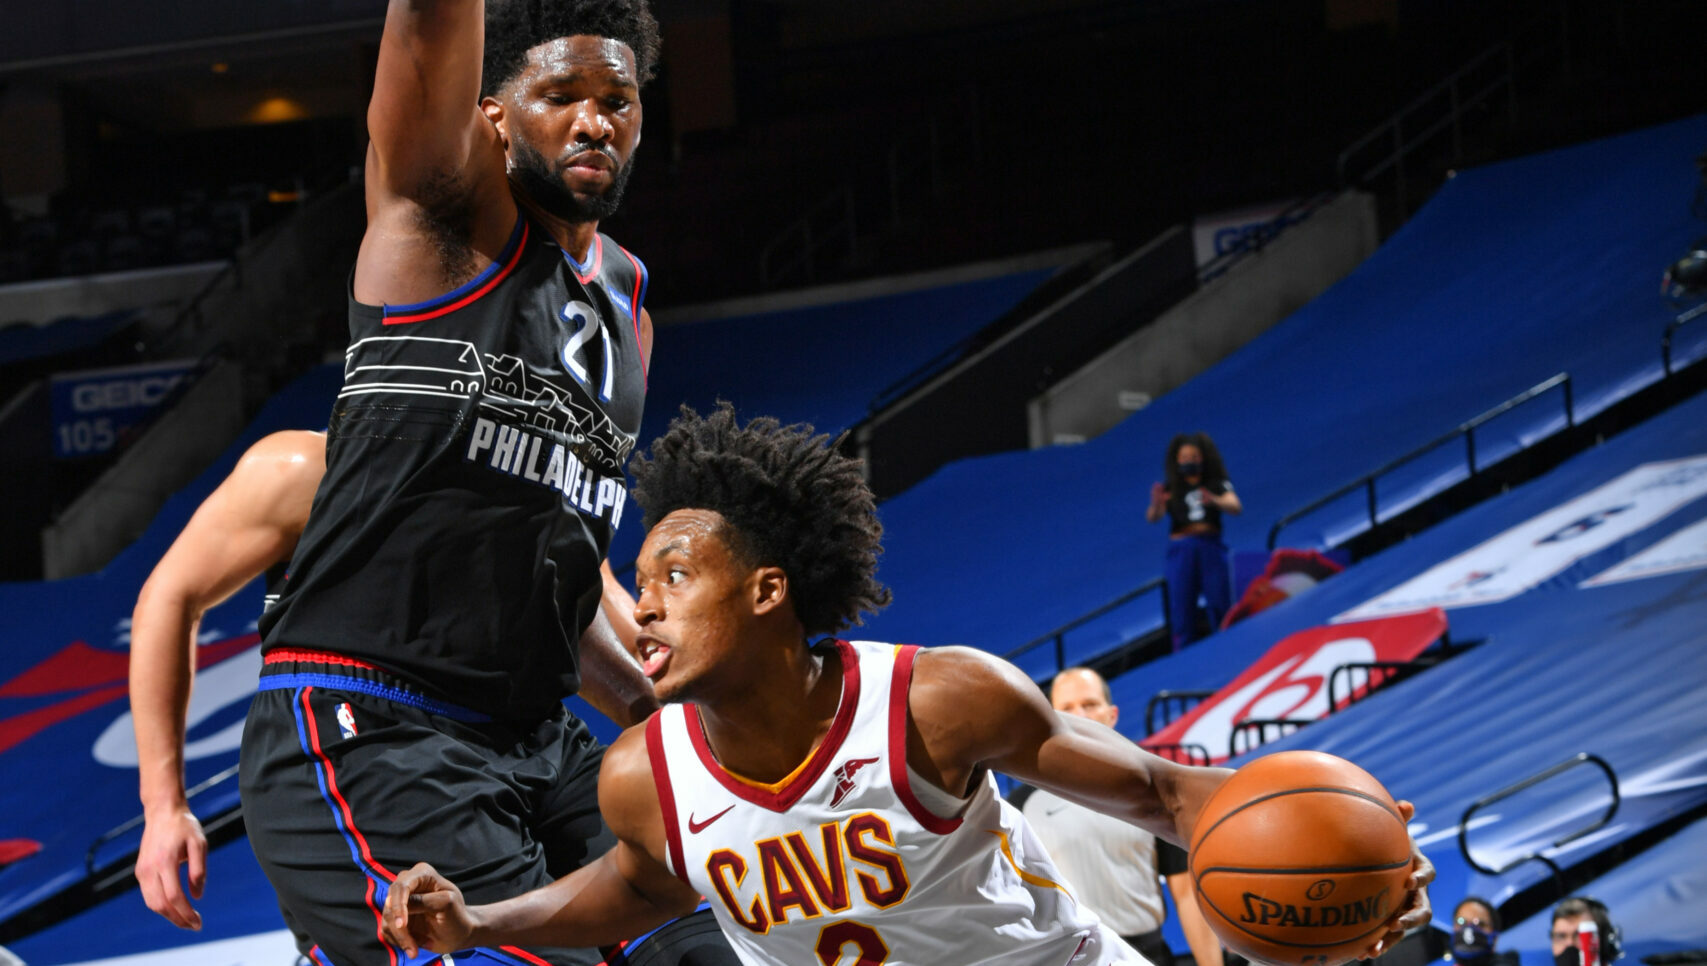 Collin Sexton drops 28 points in win over 76ers